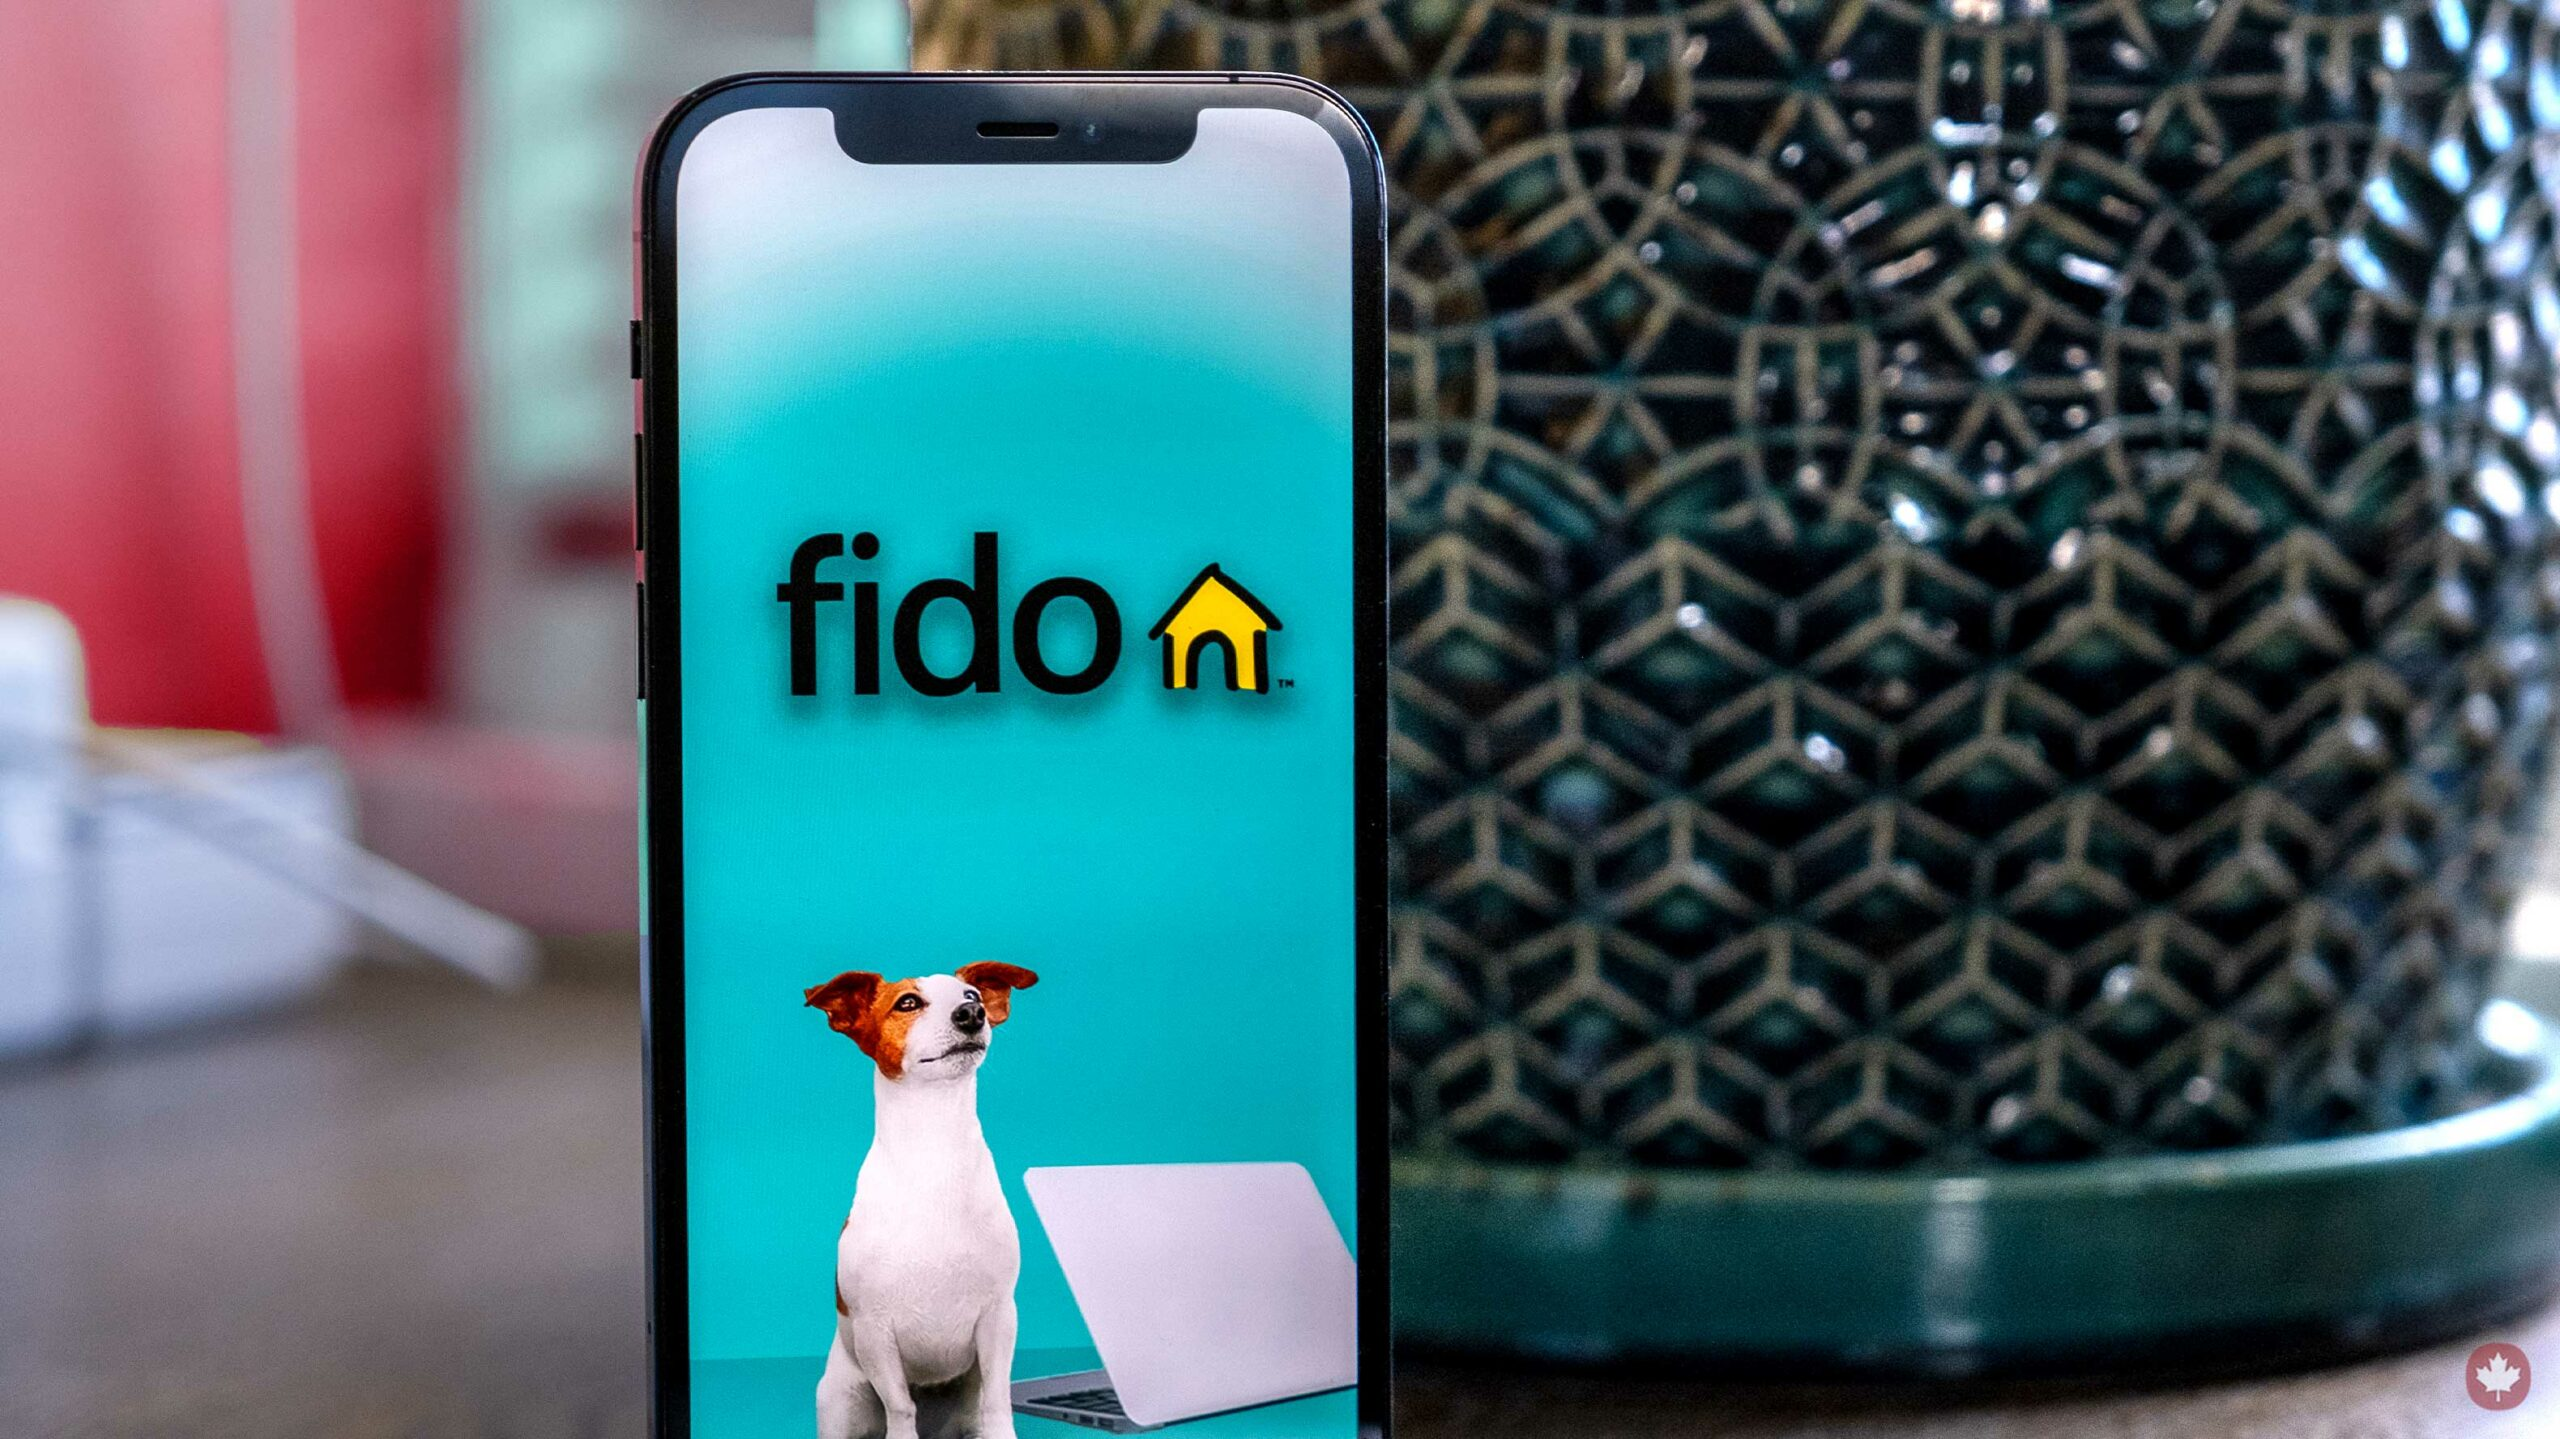 , [:en]Fido reductions information offers, affords 10GB/$50 and 16GB/$75 plans[:], Laban Juan